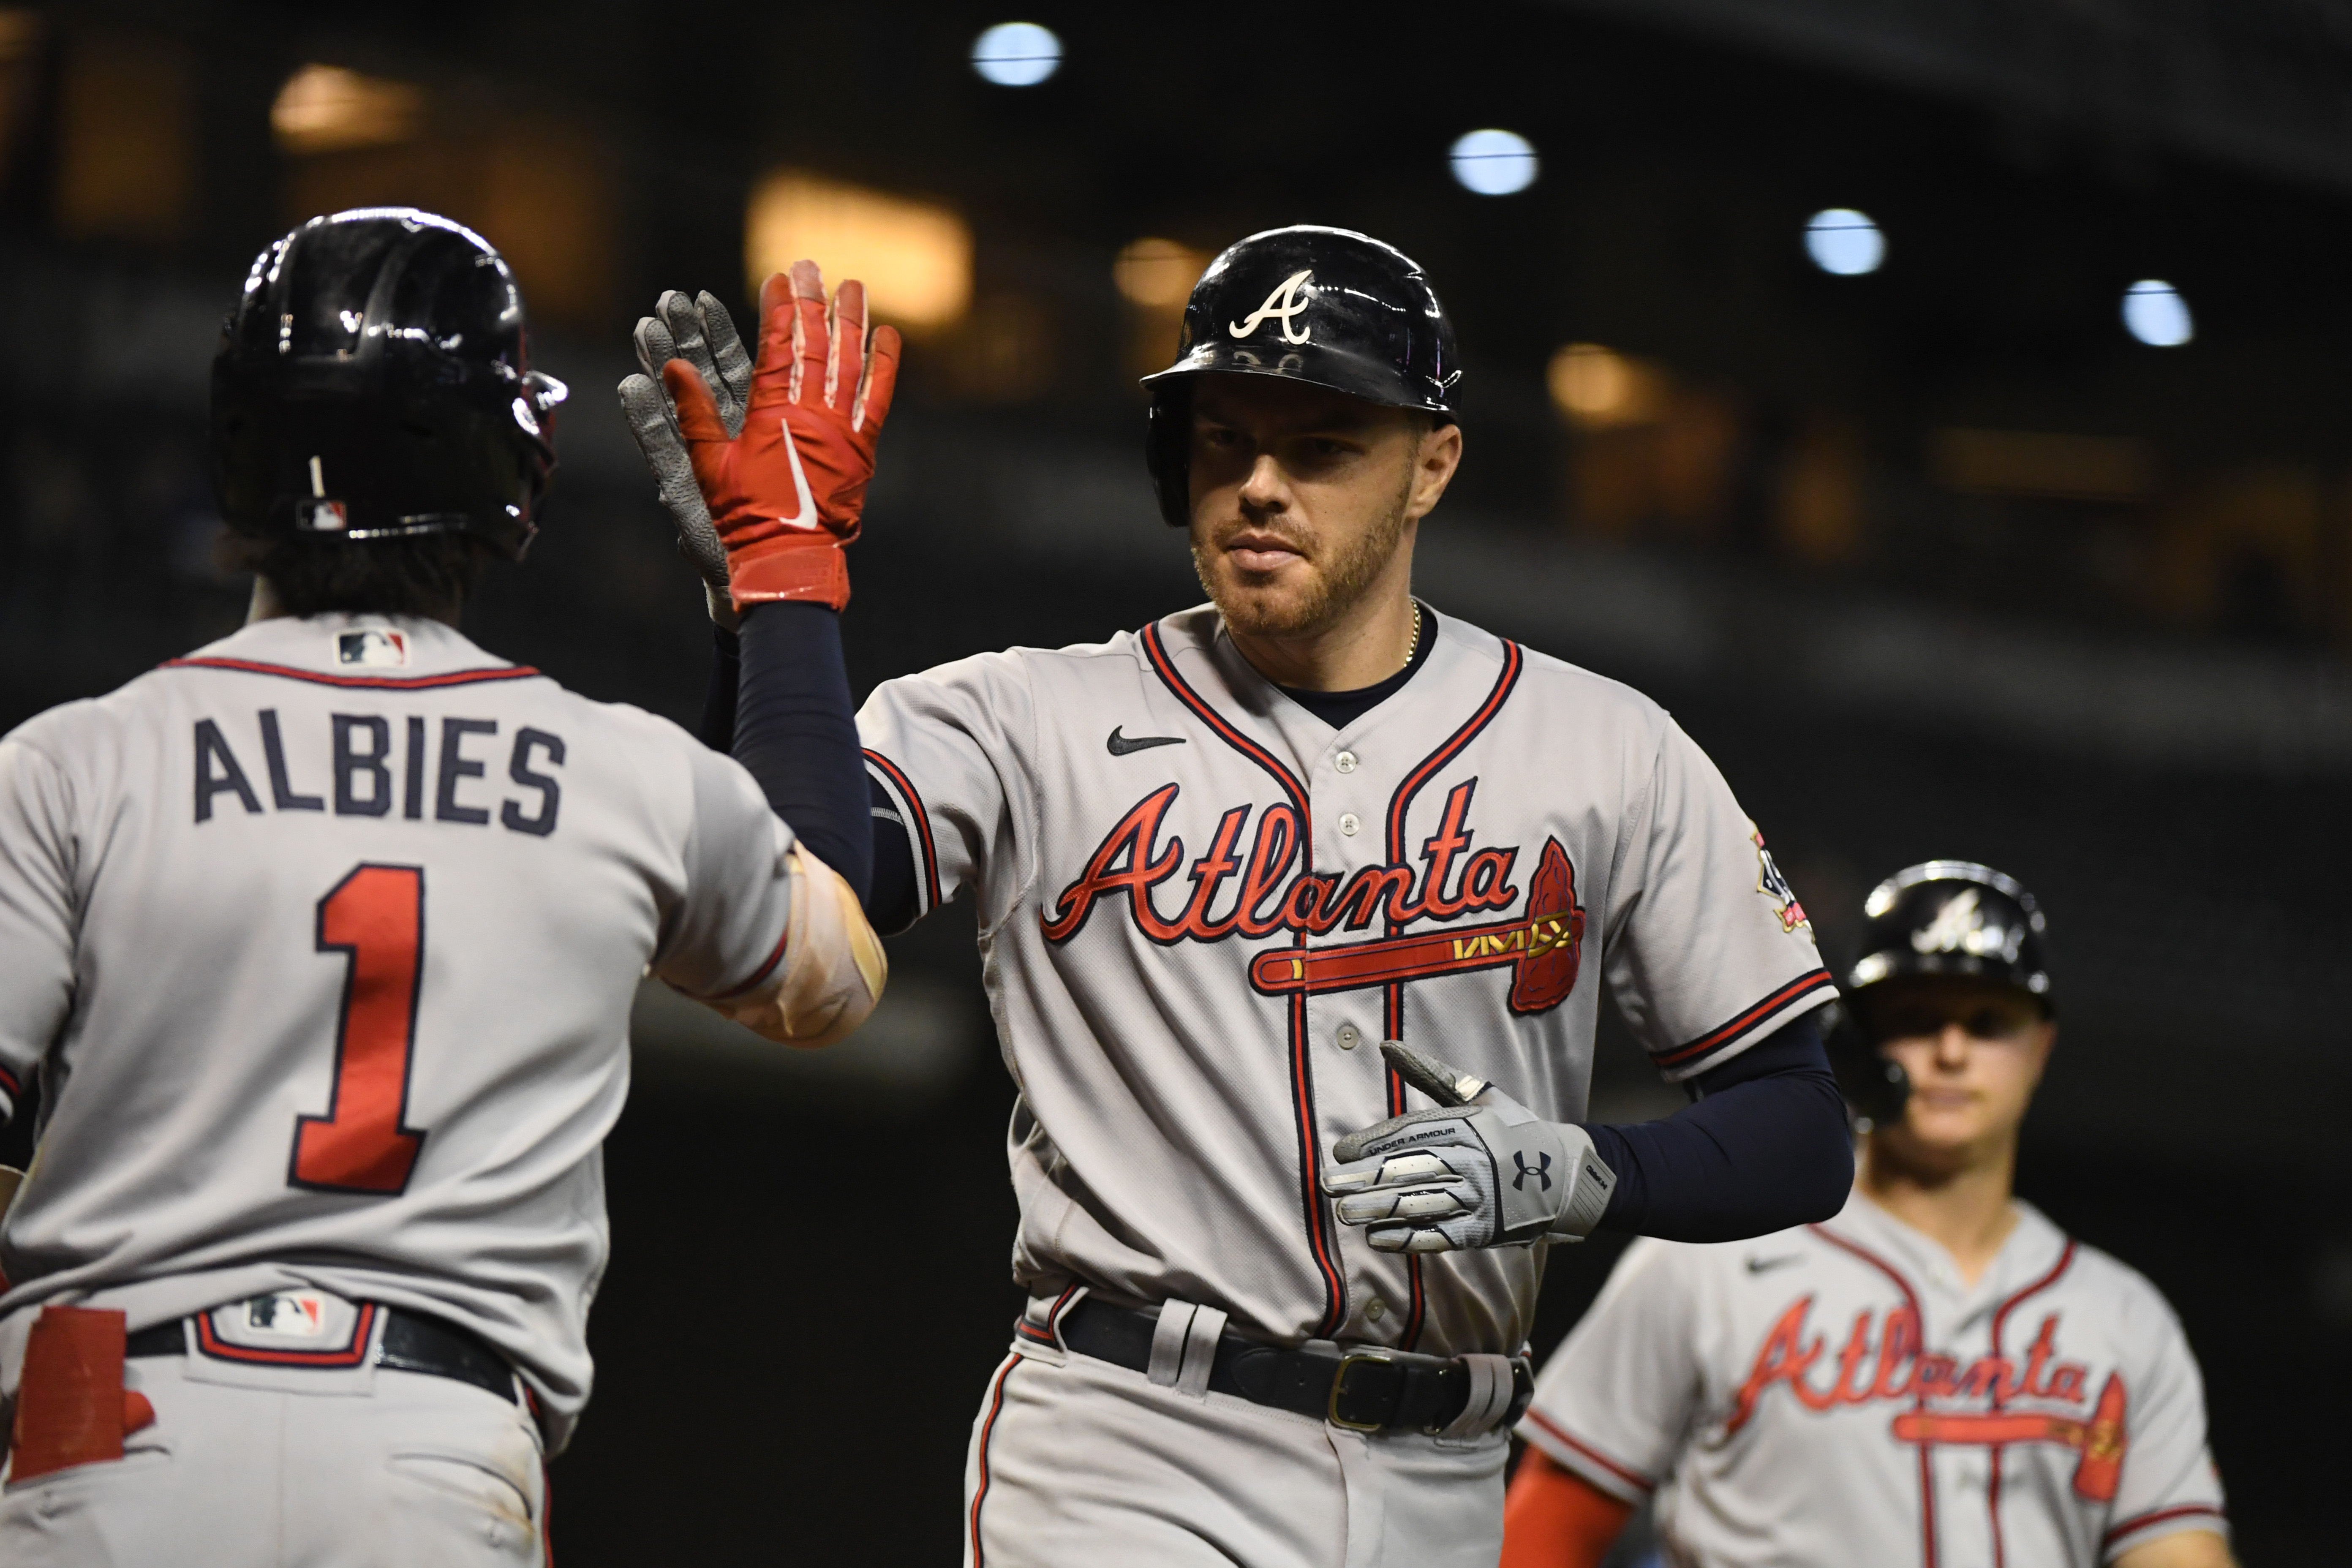 Freddie Freeman #5 of the Atlanta Braves celebrates with Ozzie Albies #1 after hitting a two-run home run off Tyler Clippard #36 of the Arizona Diamondbacks during the ninth inning at Chase Field on September 22, 2021 in Phoenix, Arizona.